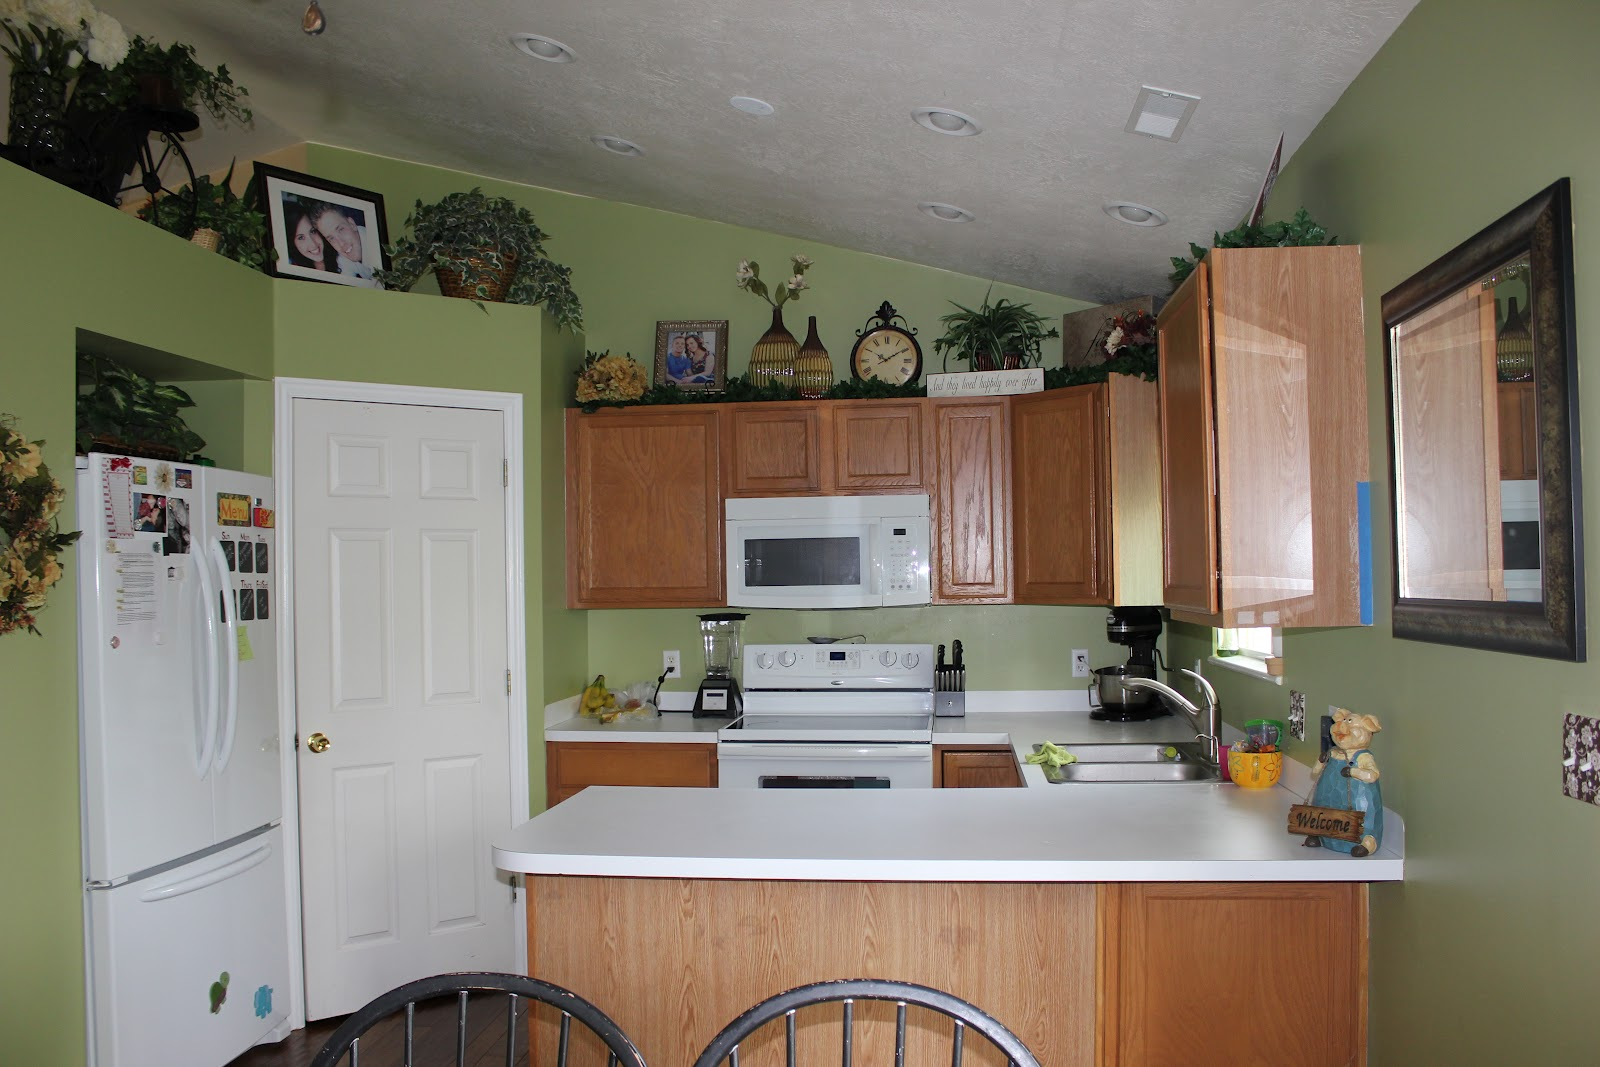 The jett family kitchen re do for Painting kitchen ideas walls